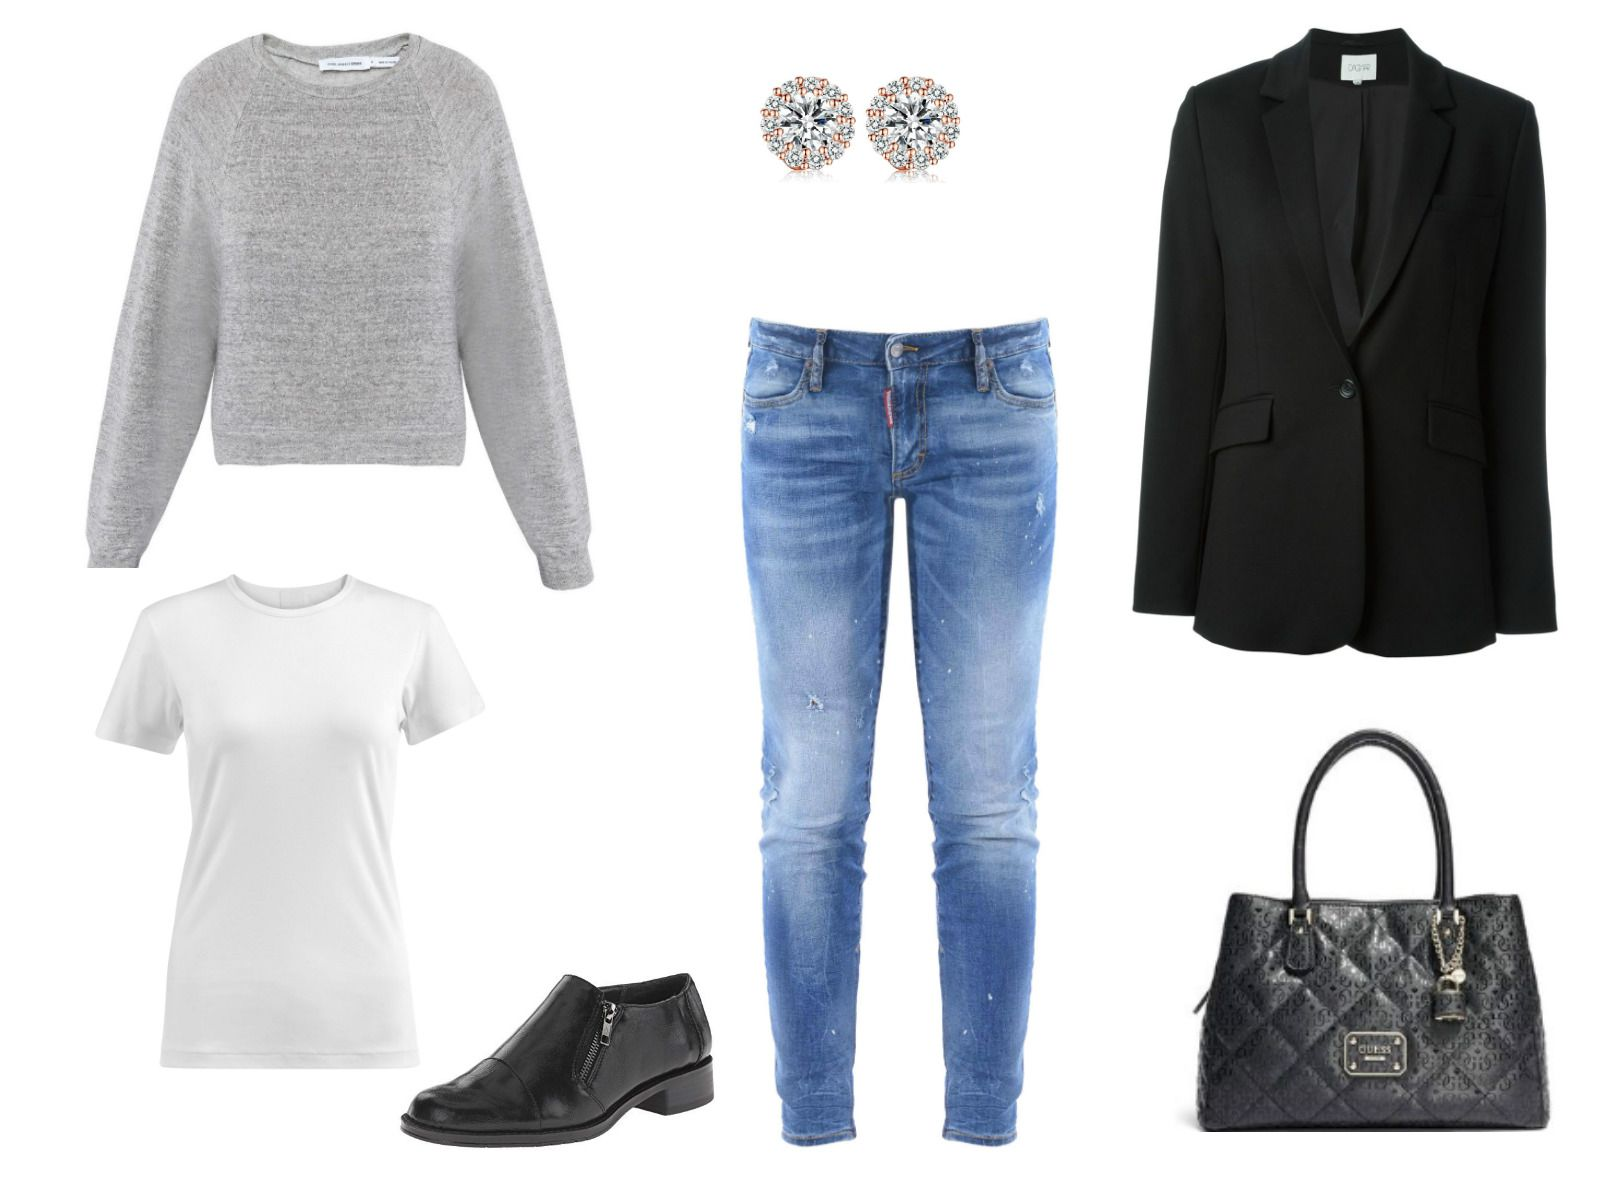 Outfit idea - cropped jeans and a black blazer